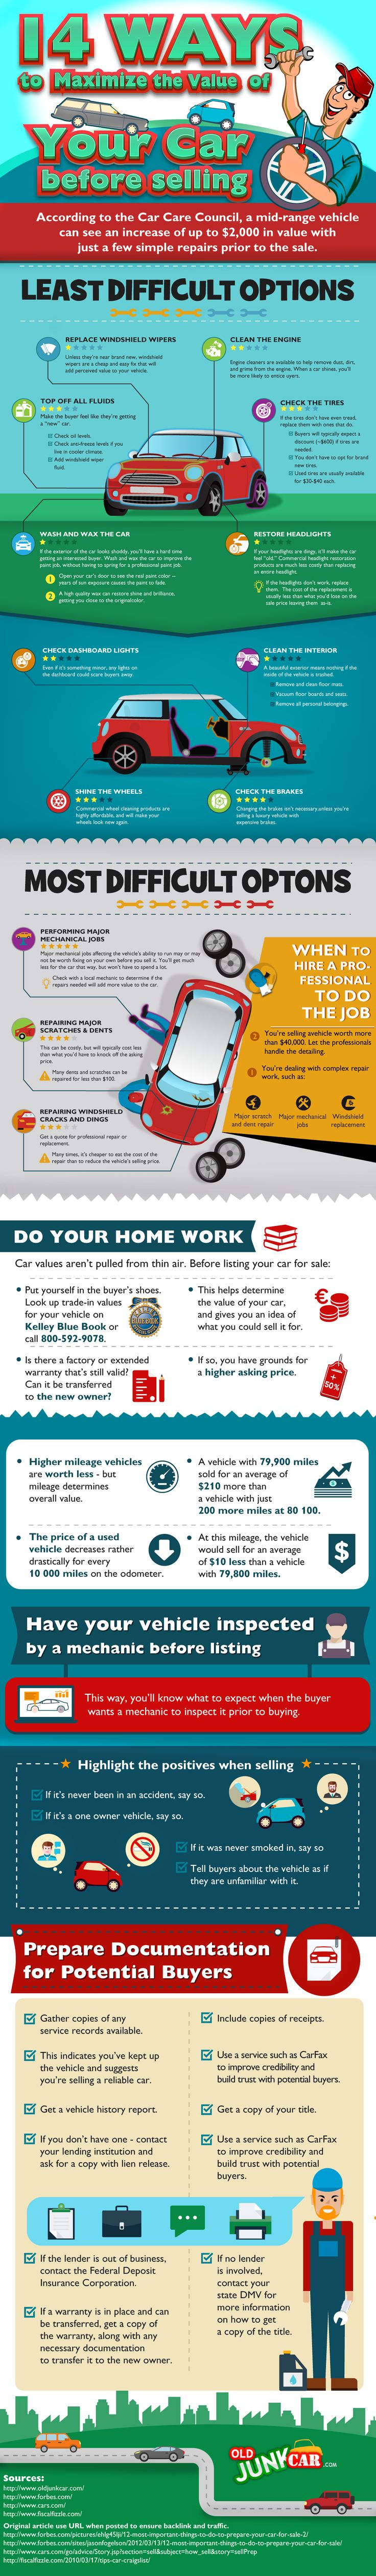 Selling a used car isn't fun, especially if you aren't a car person. Old Junk Car has an infographic that ranks the top things you can do to get the most money back.